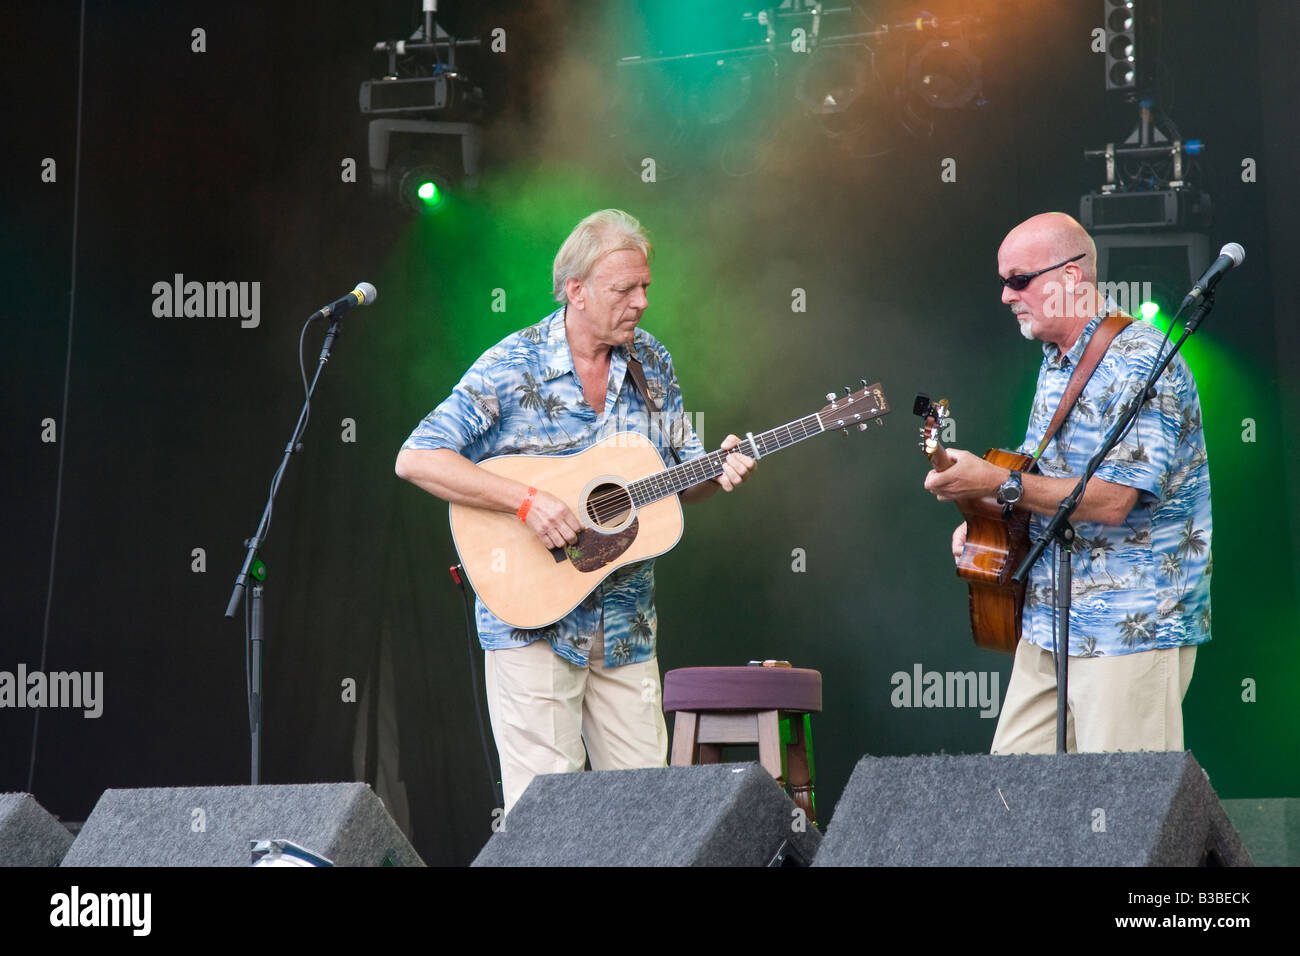 Dave Pegg and PJ Wright on stage at Fairport s Cropredy Convention music festival 2008 near Banbury England UK - Stock Image